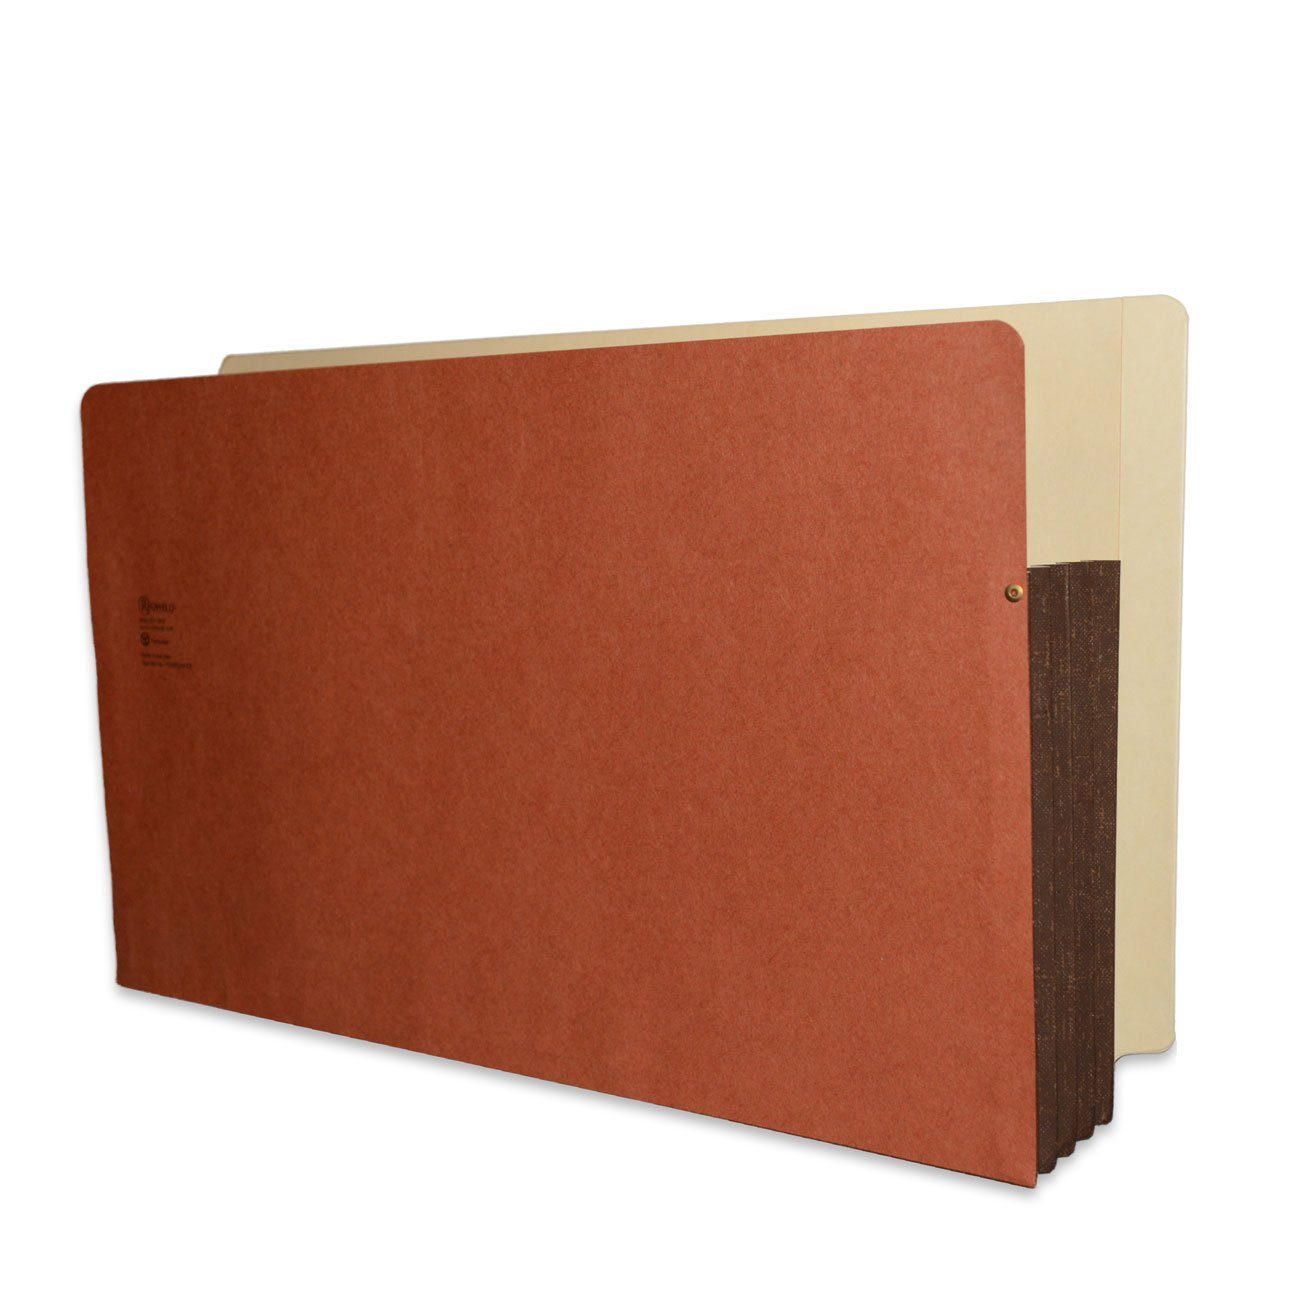 Redweld End Tab File Pocket, Legal Size with 3 1/2'' Fully Reinforced Tyvek Gusset, 50 per Carton